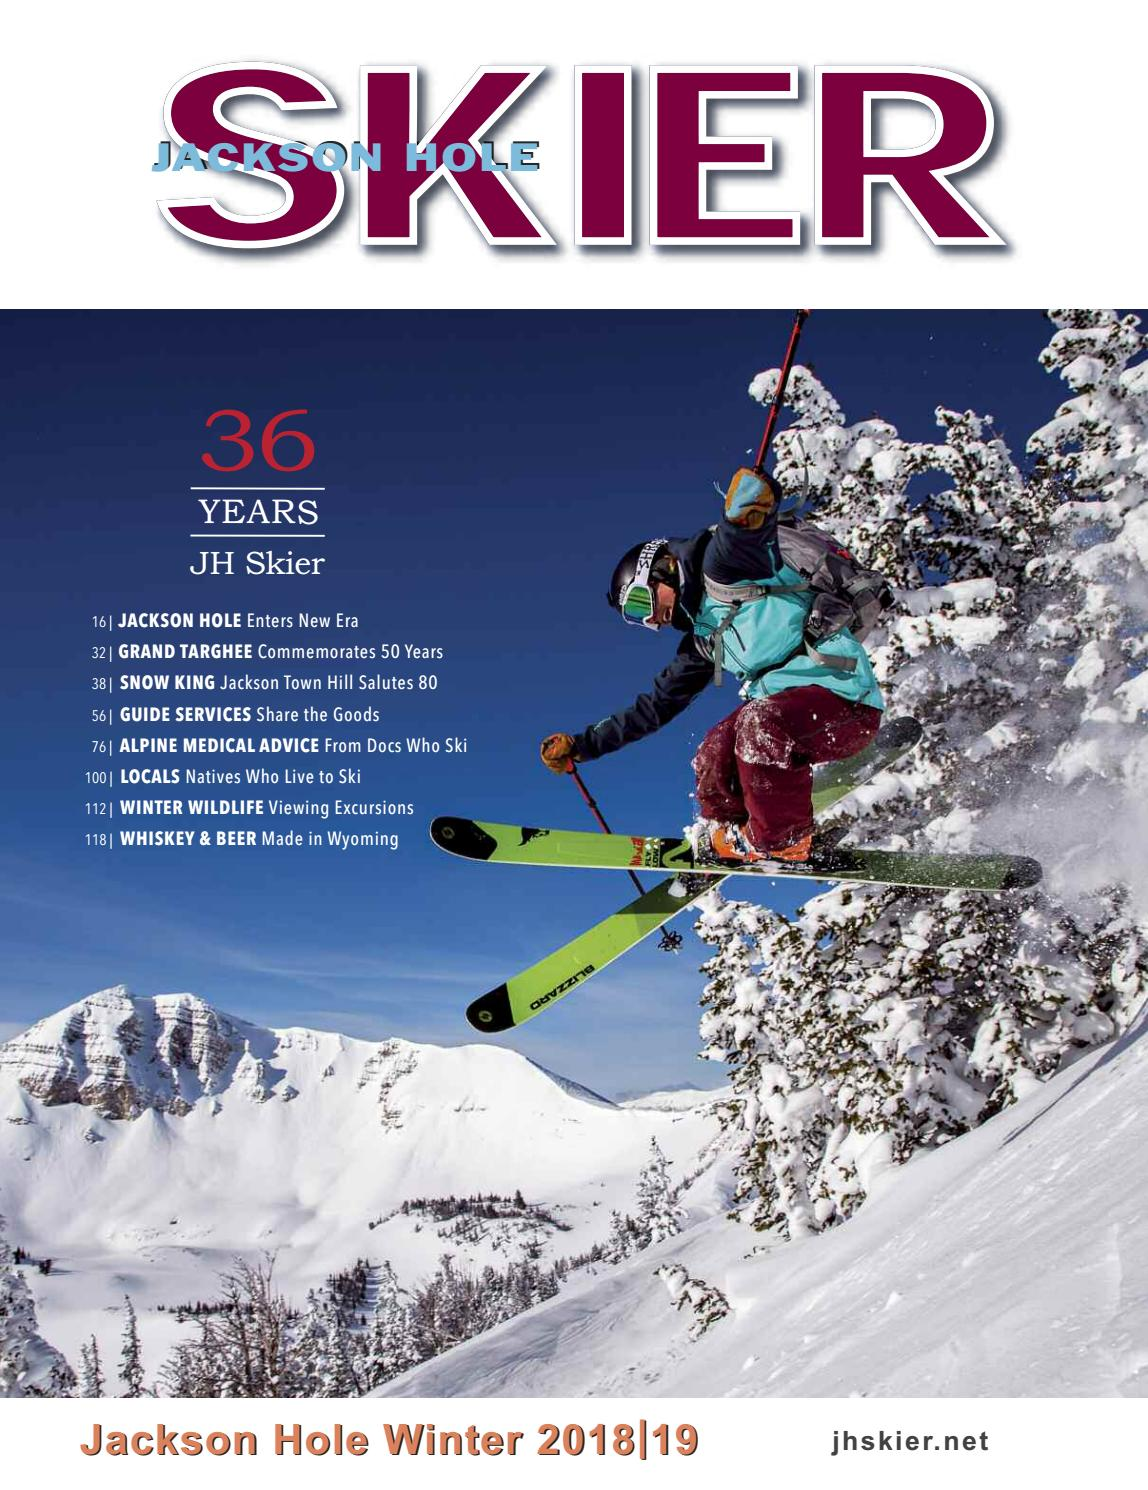 e8bc46a979c Jackson Hole Skier Magazine 2019 by Bob Woodall - issuu